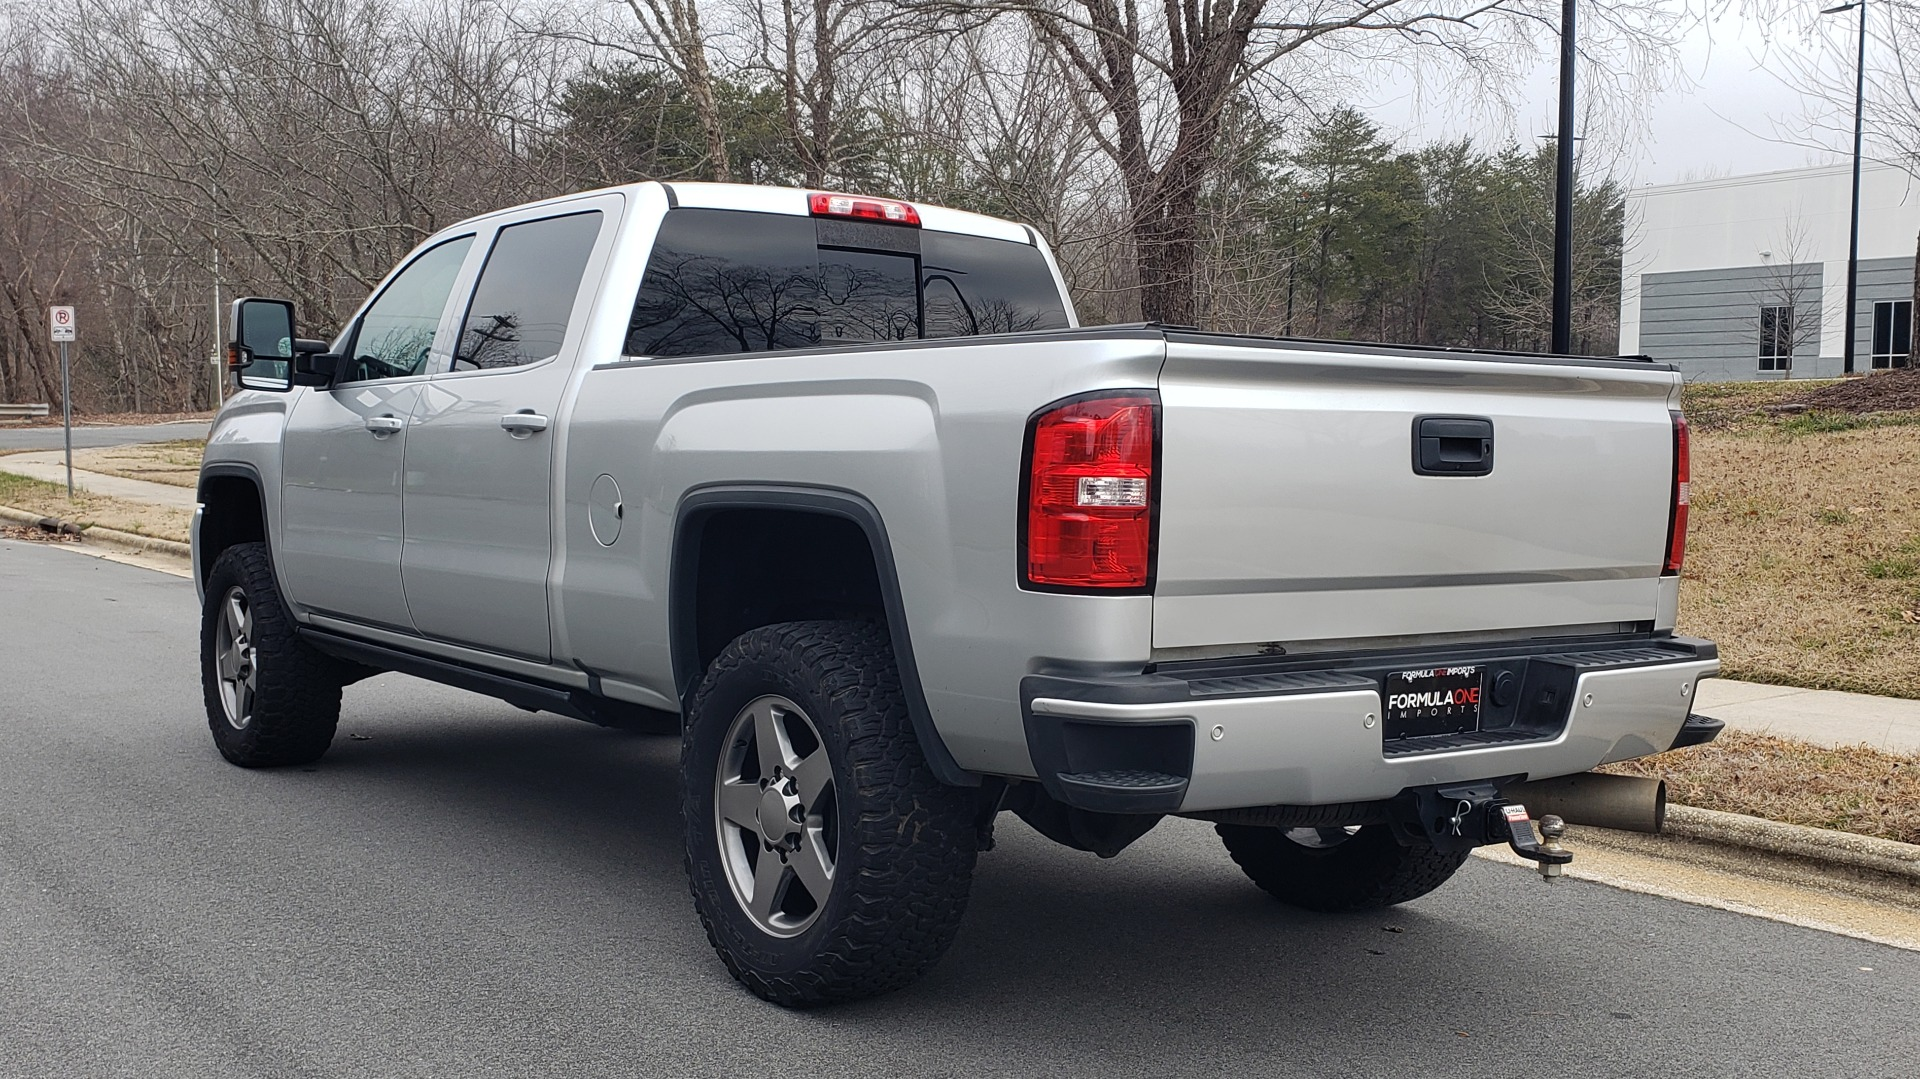 Used 2018 GMC SIERRA 2500HD DENALI 4X4 CREWCAB / 6.6L DURAMAX PLUS / NAV / SUNROOF / REARVIEW for sale $61,999 at Formula Imports in Charlotte NC 28227 4